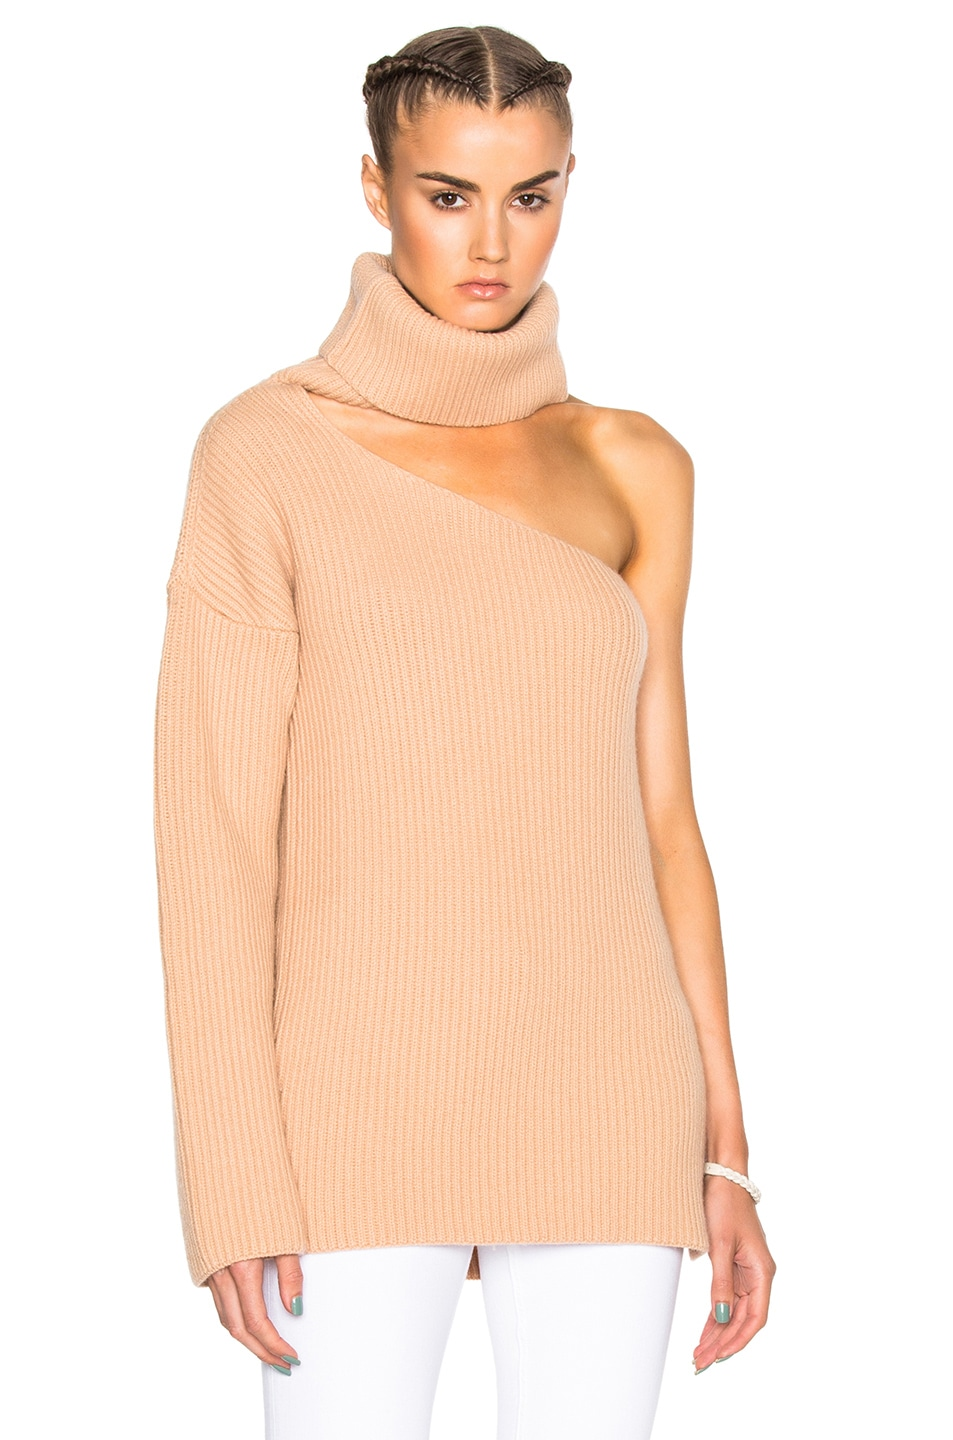 8e9994d790eb9 Image 1 of Baja East Fisherman Rib Wool Cashmere Sweater in Camel